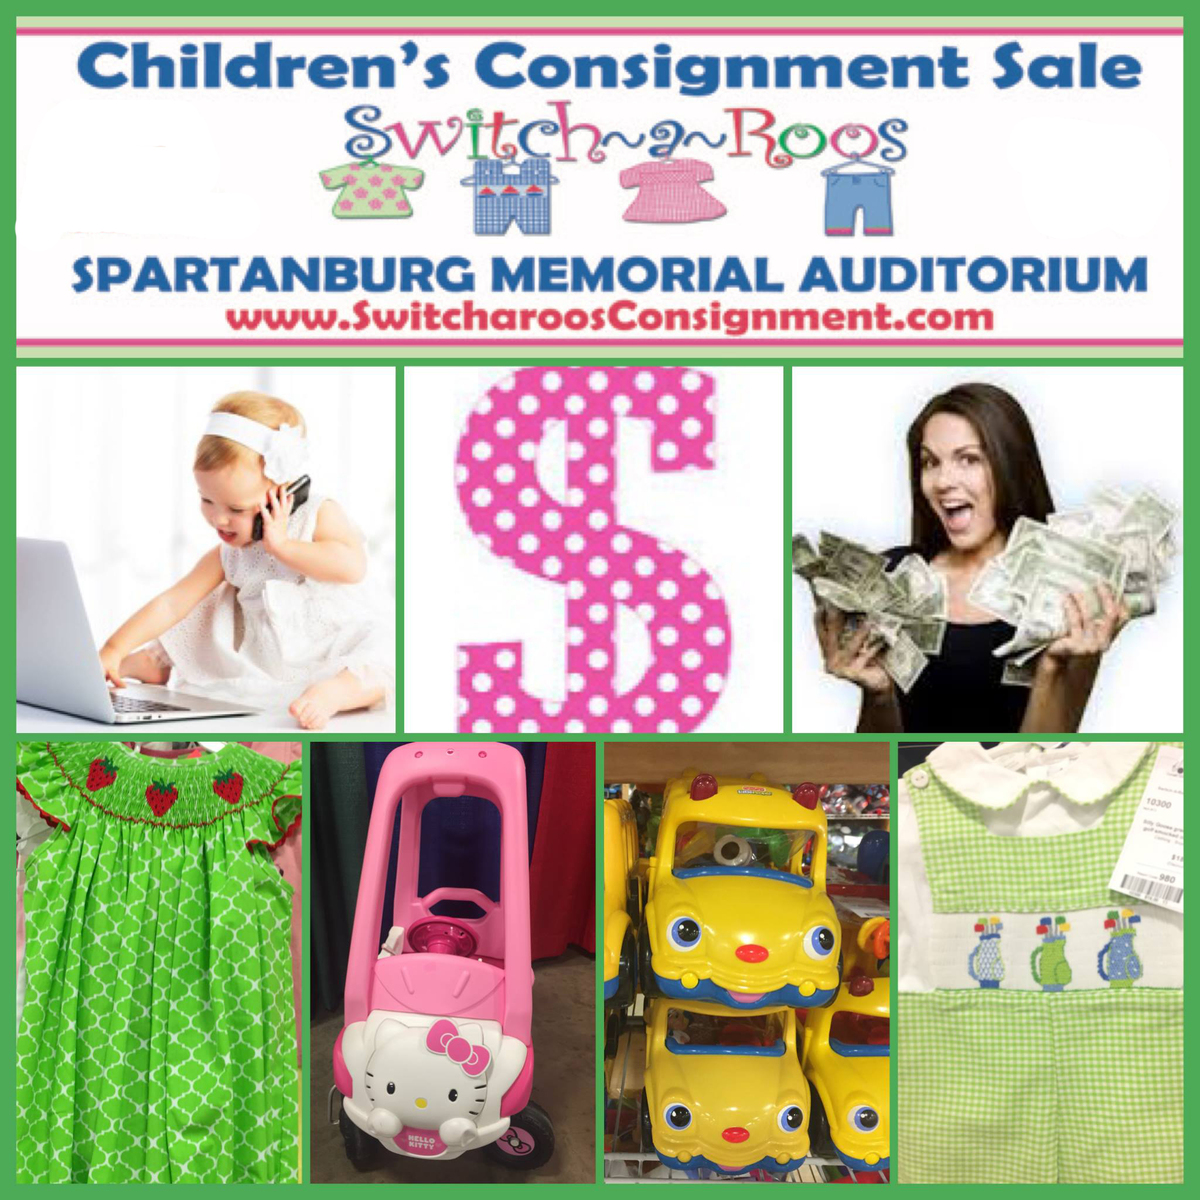 Switch - A -Roos Consignment Sale